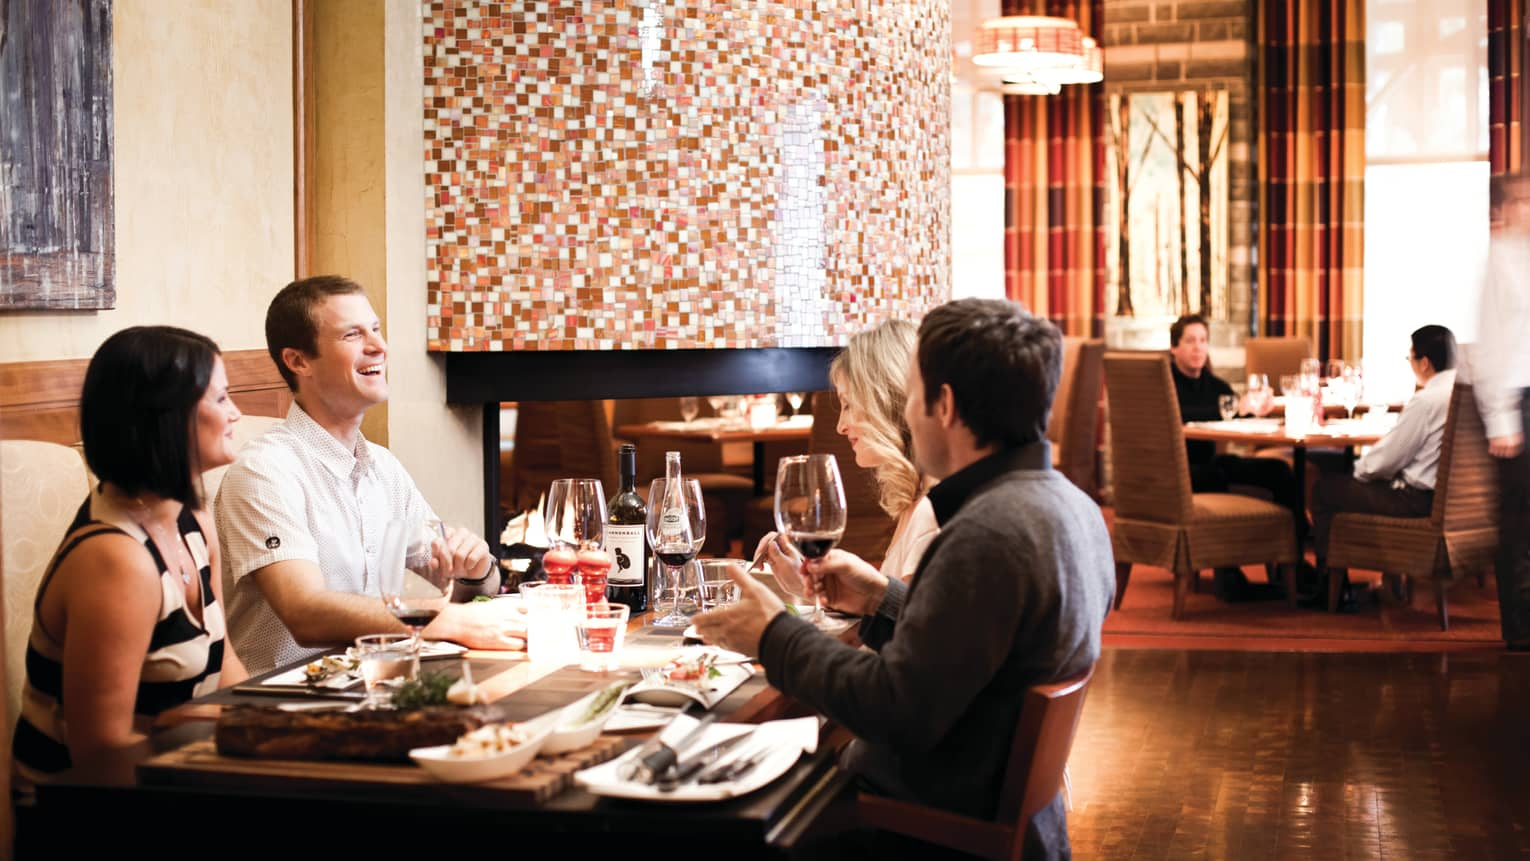 Four friends laugh over dinner, wine at table in Sidecut restaurant dining room